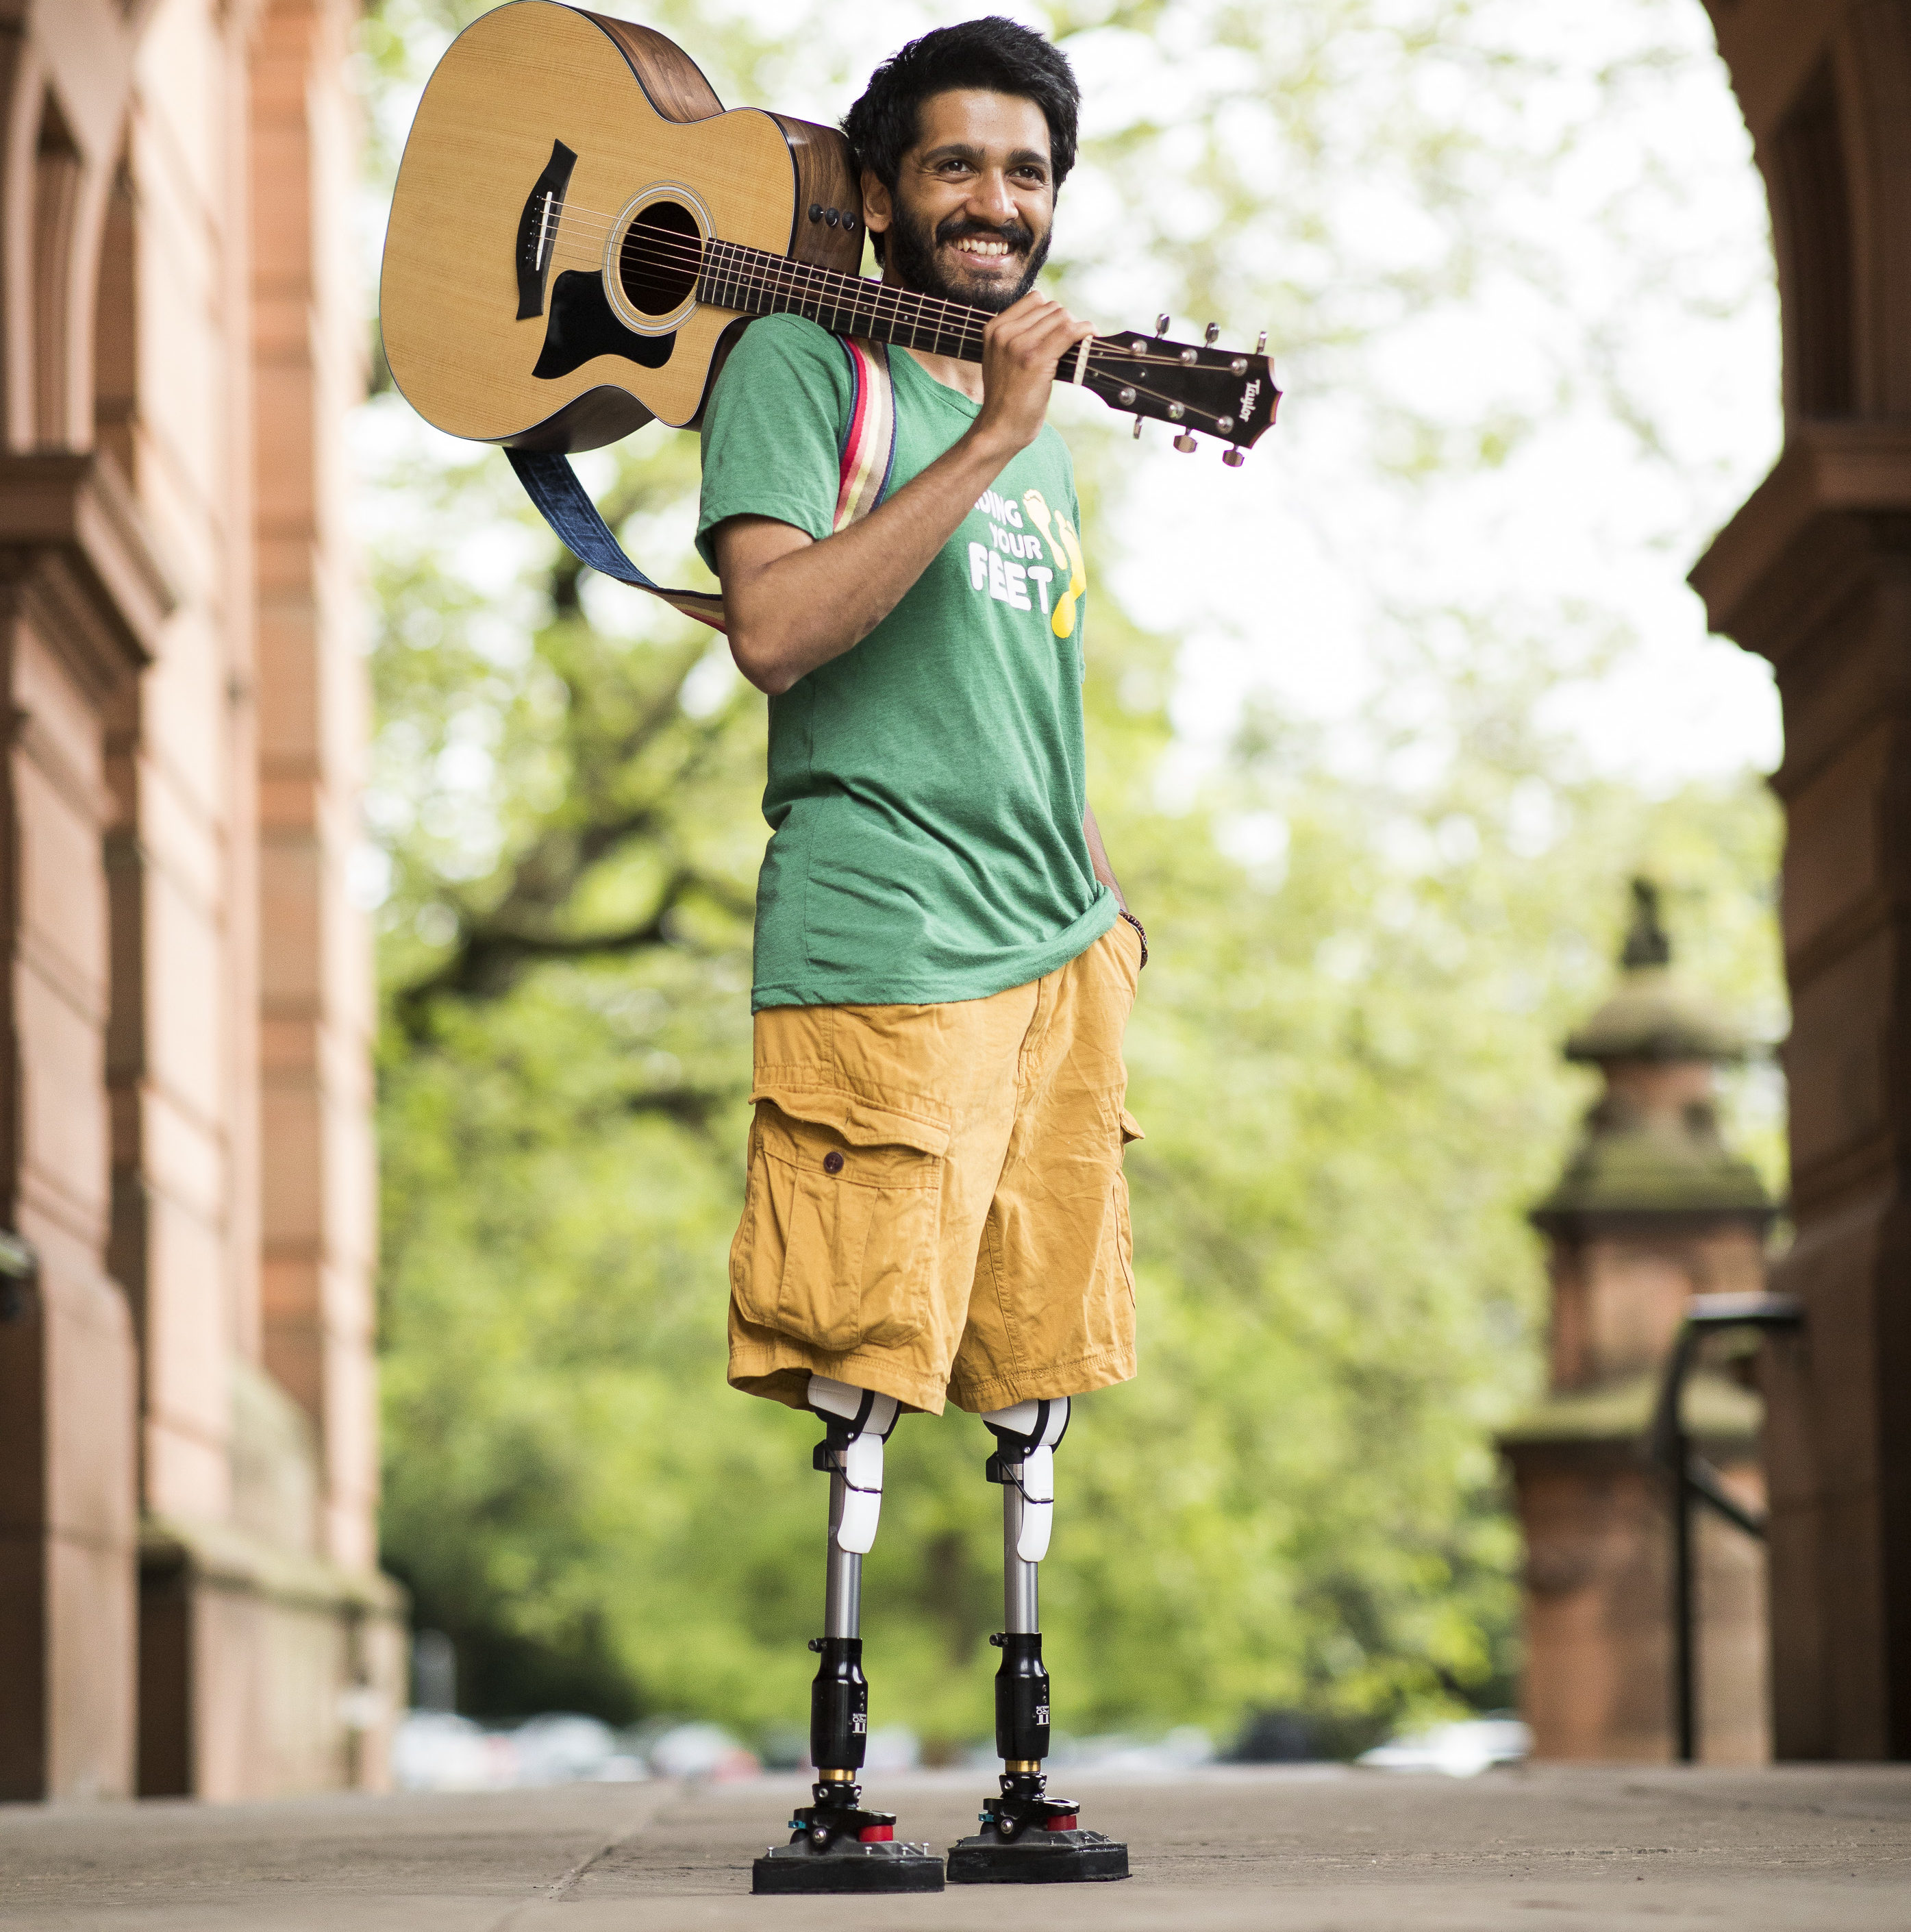 """Double amputee Paul Johnston had both his legs removed above the knee after taking a shortcut home over rail tracks and being electrocuted by a live line he has rebuild his life and now works for the charity """"Finding your Feet"""" and has started visiting schools with his guitar to educate kids of the dangers of train lines."""